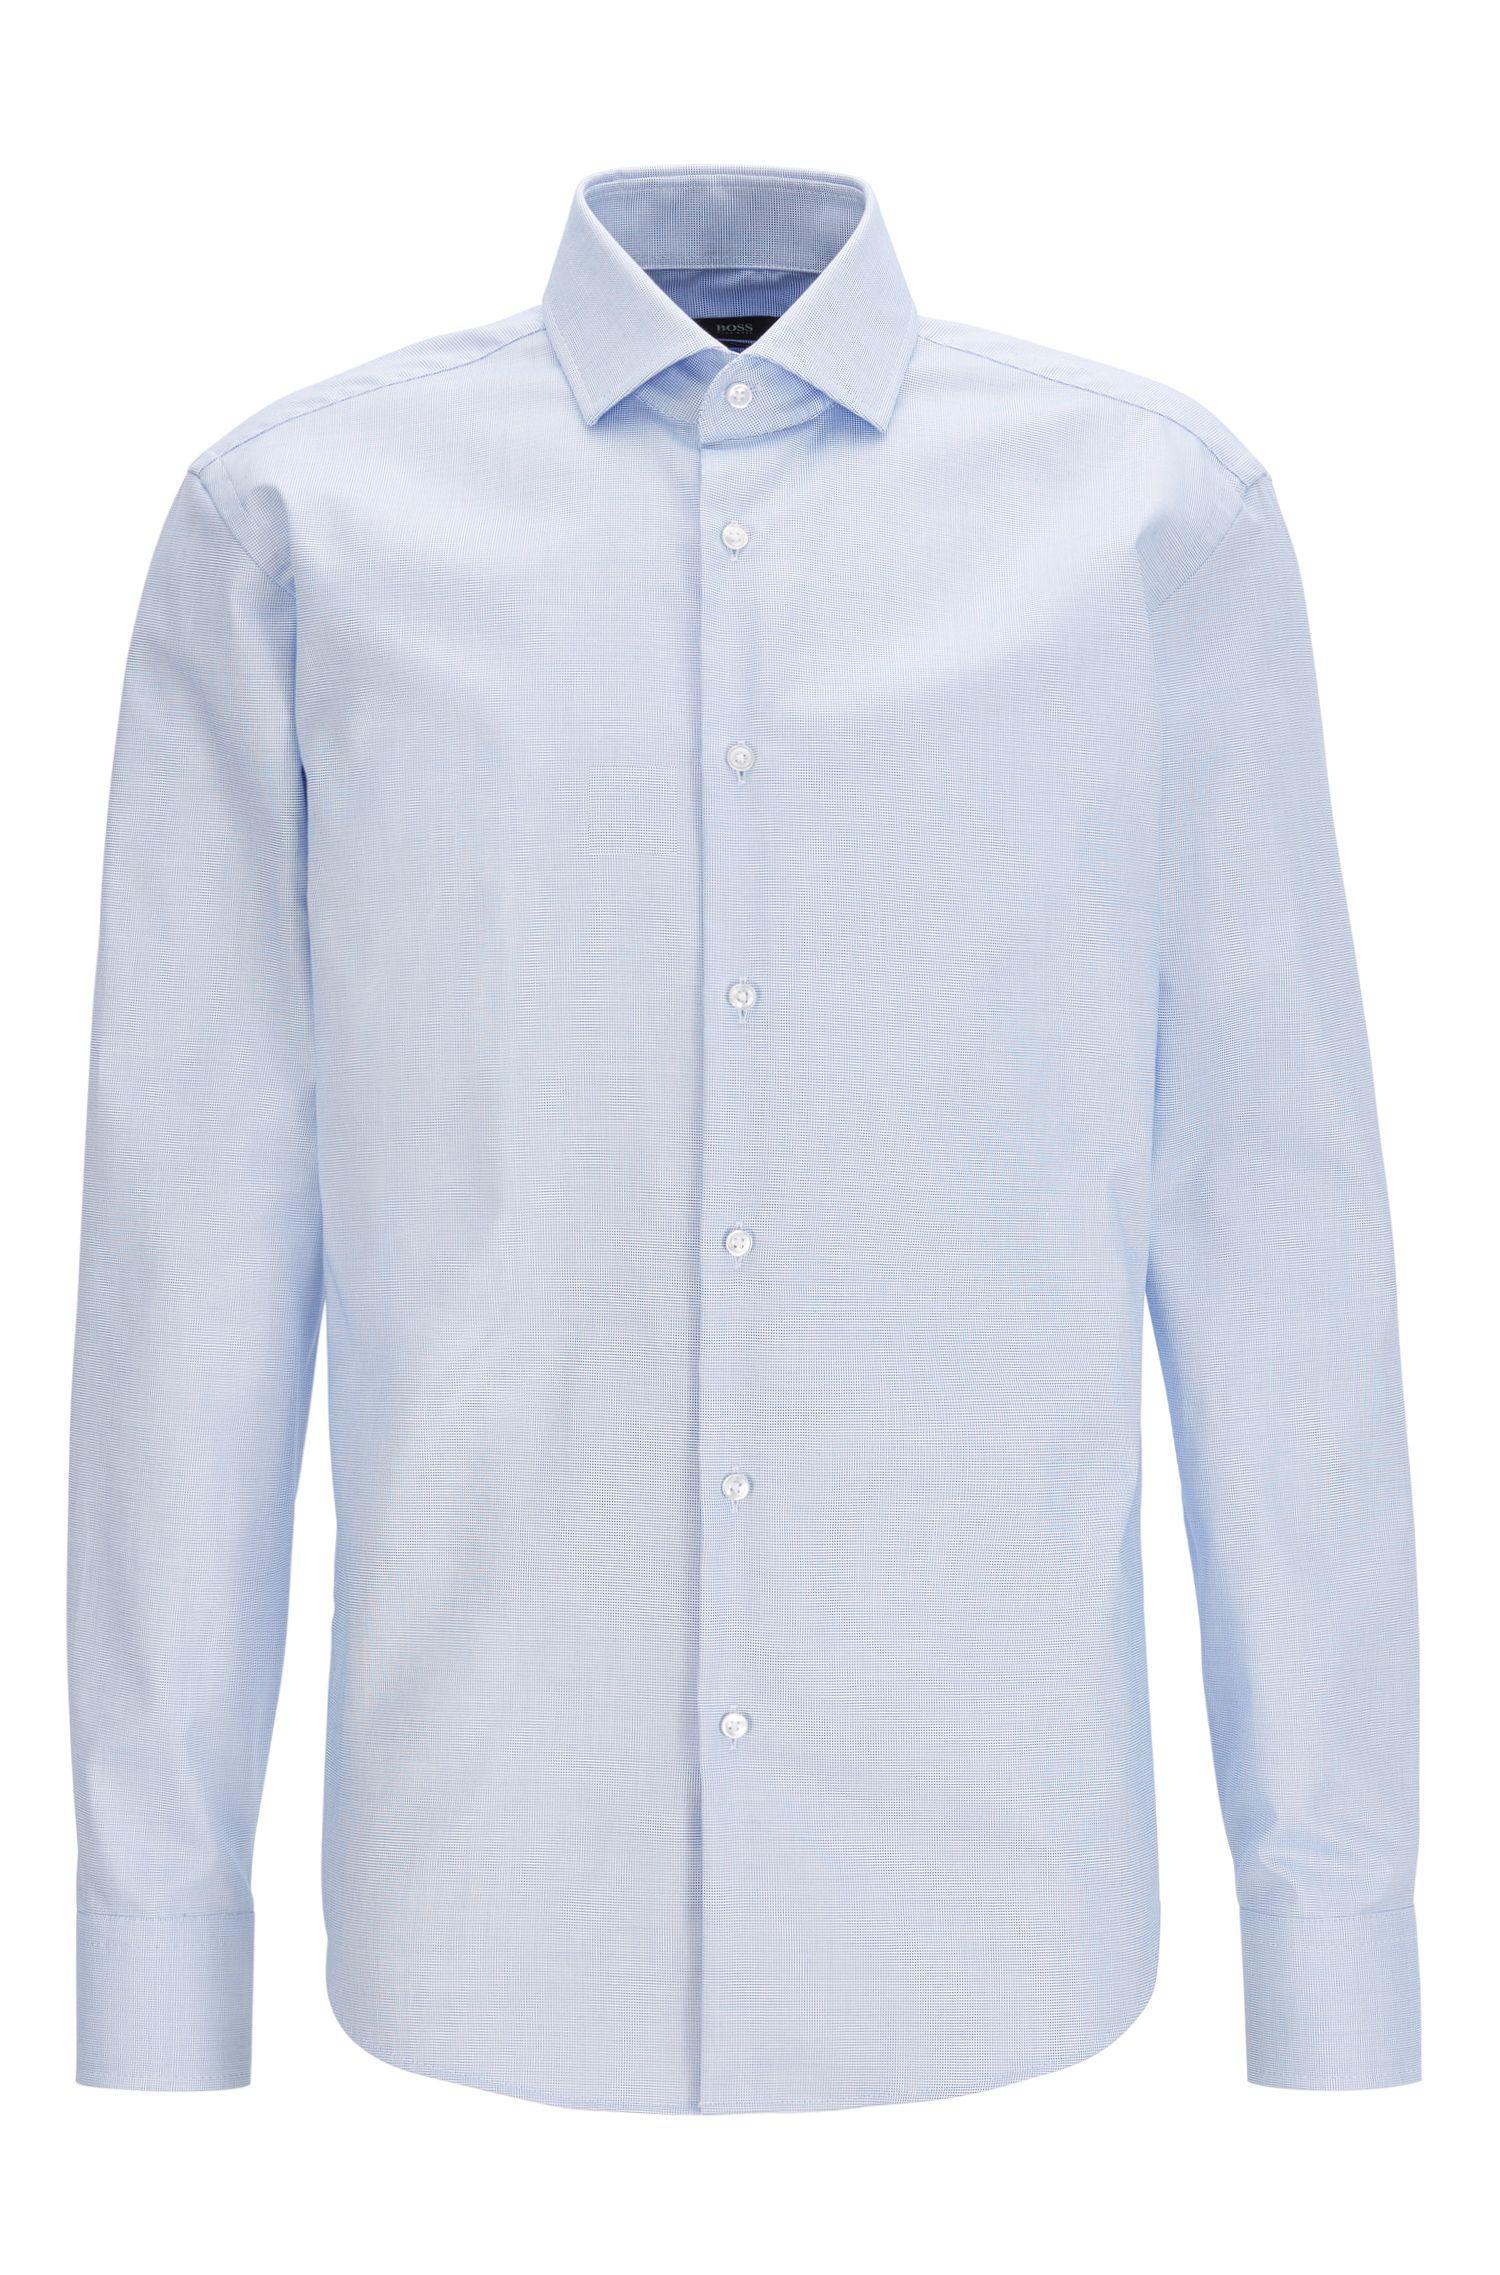 Long-sleeved shirt in Fresh Active cotton